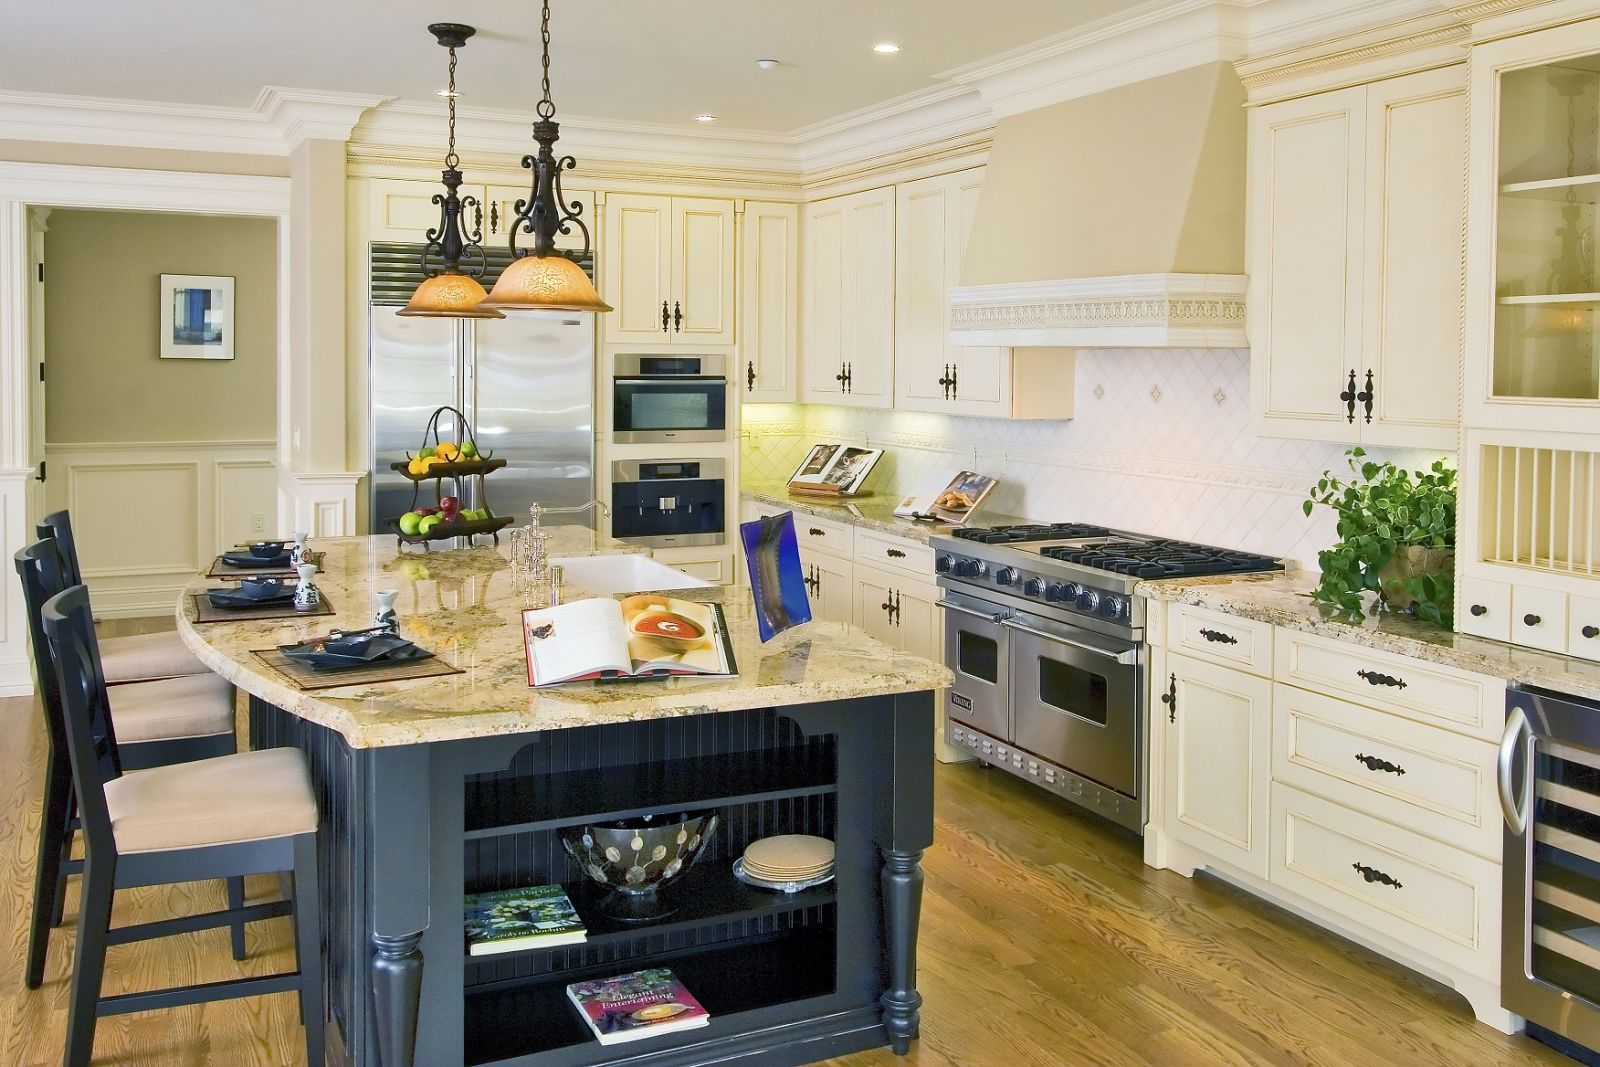 Factors to consider when upgrading your kitchen area